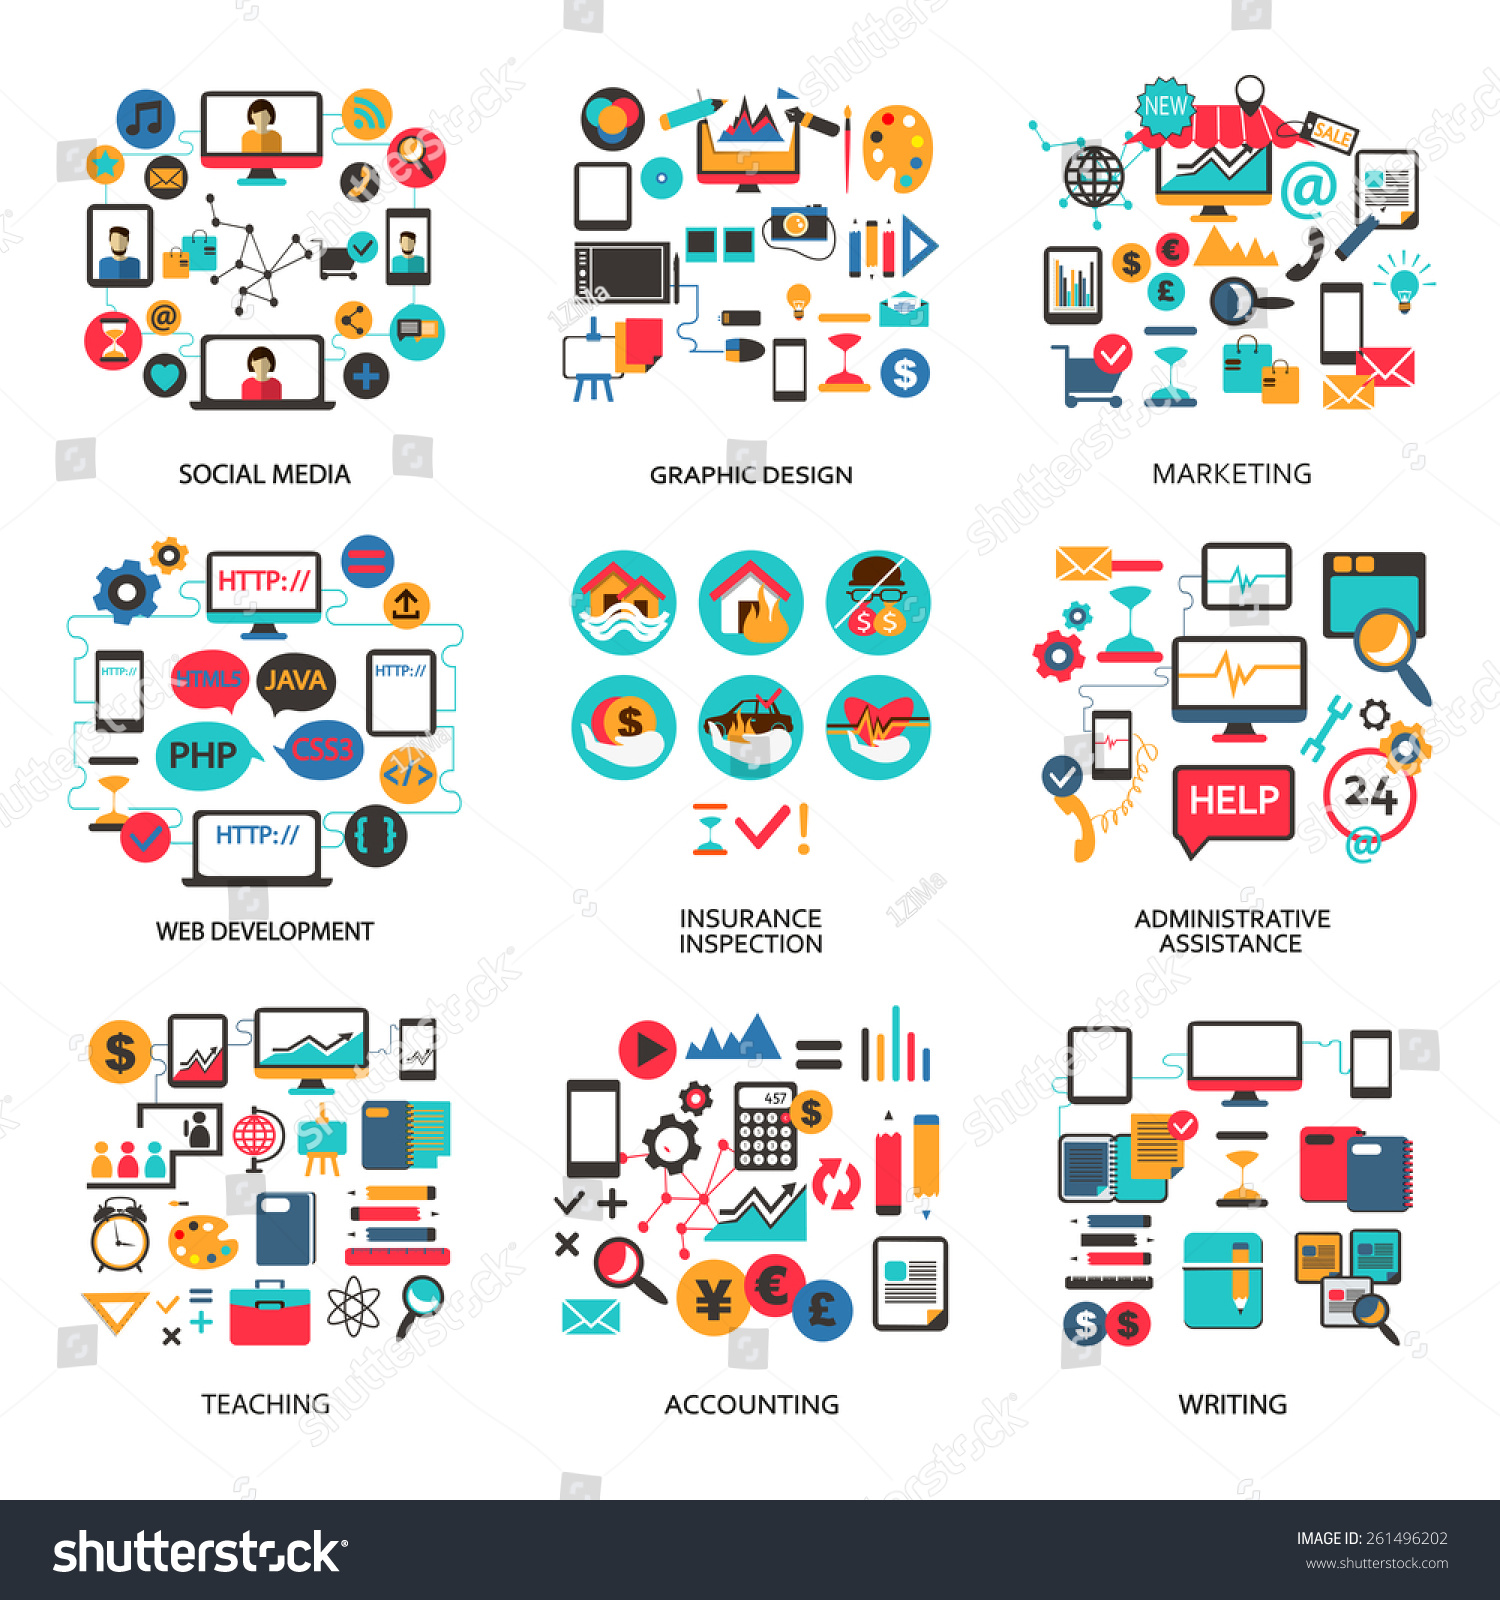 set elements lance job career stock vector 261496202 set of elements for lance job career